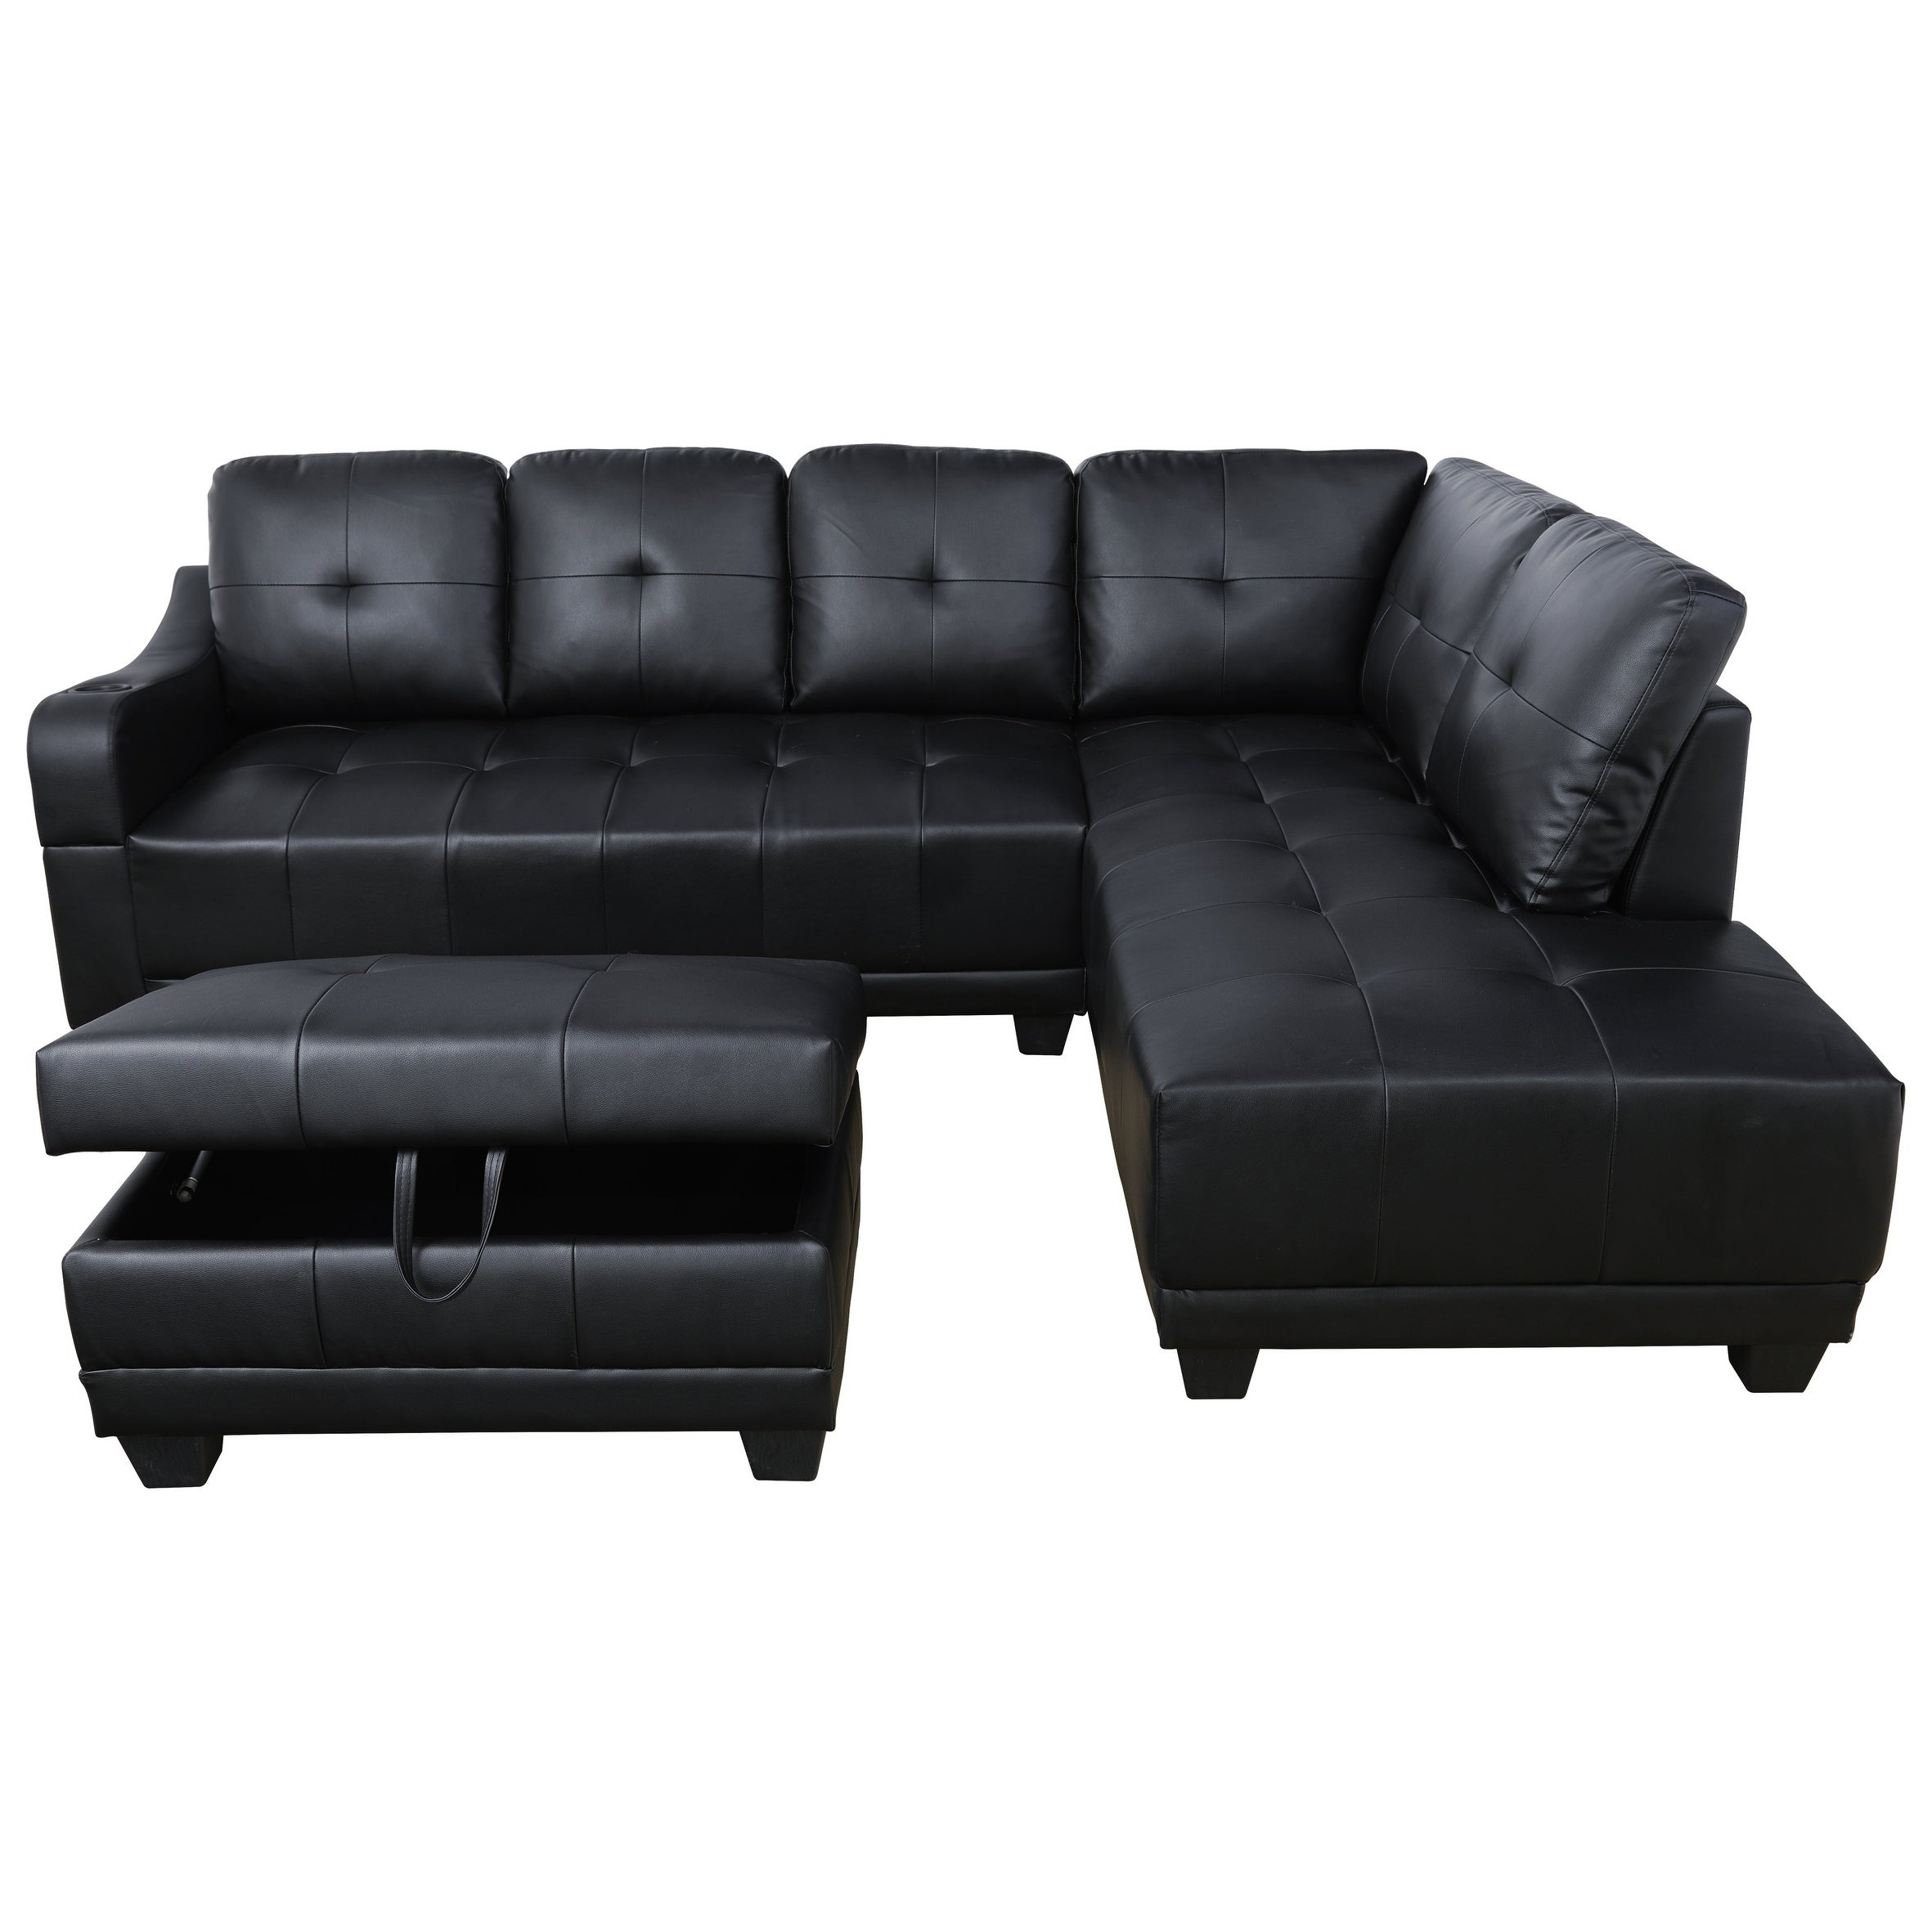 AYCP Furniture Faux Leather Sectional Sofa with Storage Ottoman and Cup  Holder on the Arm